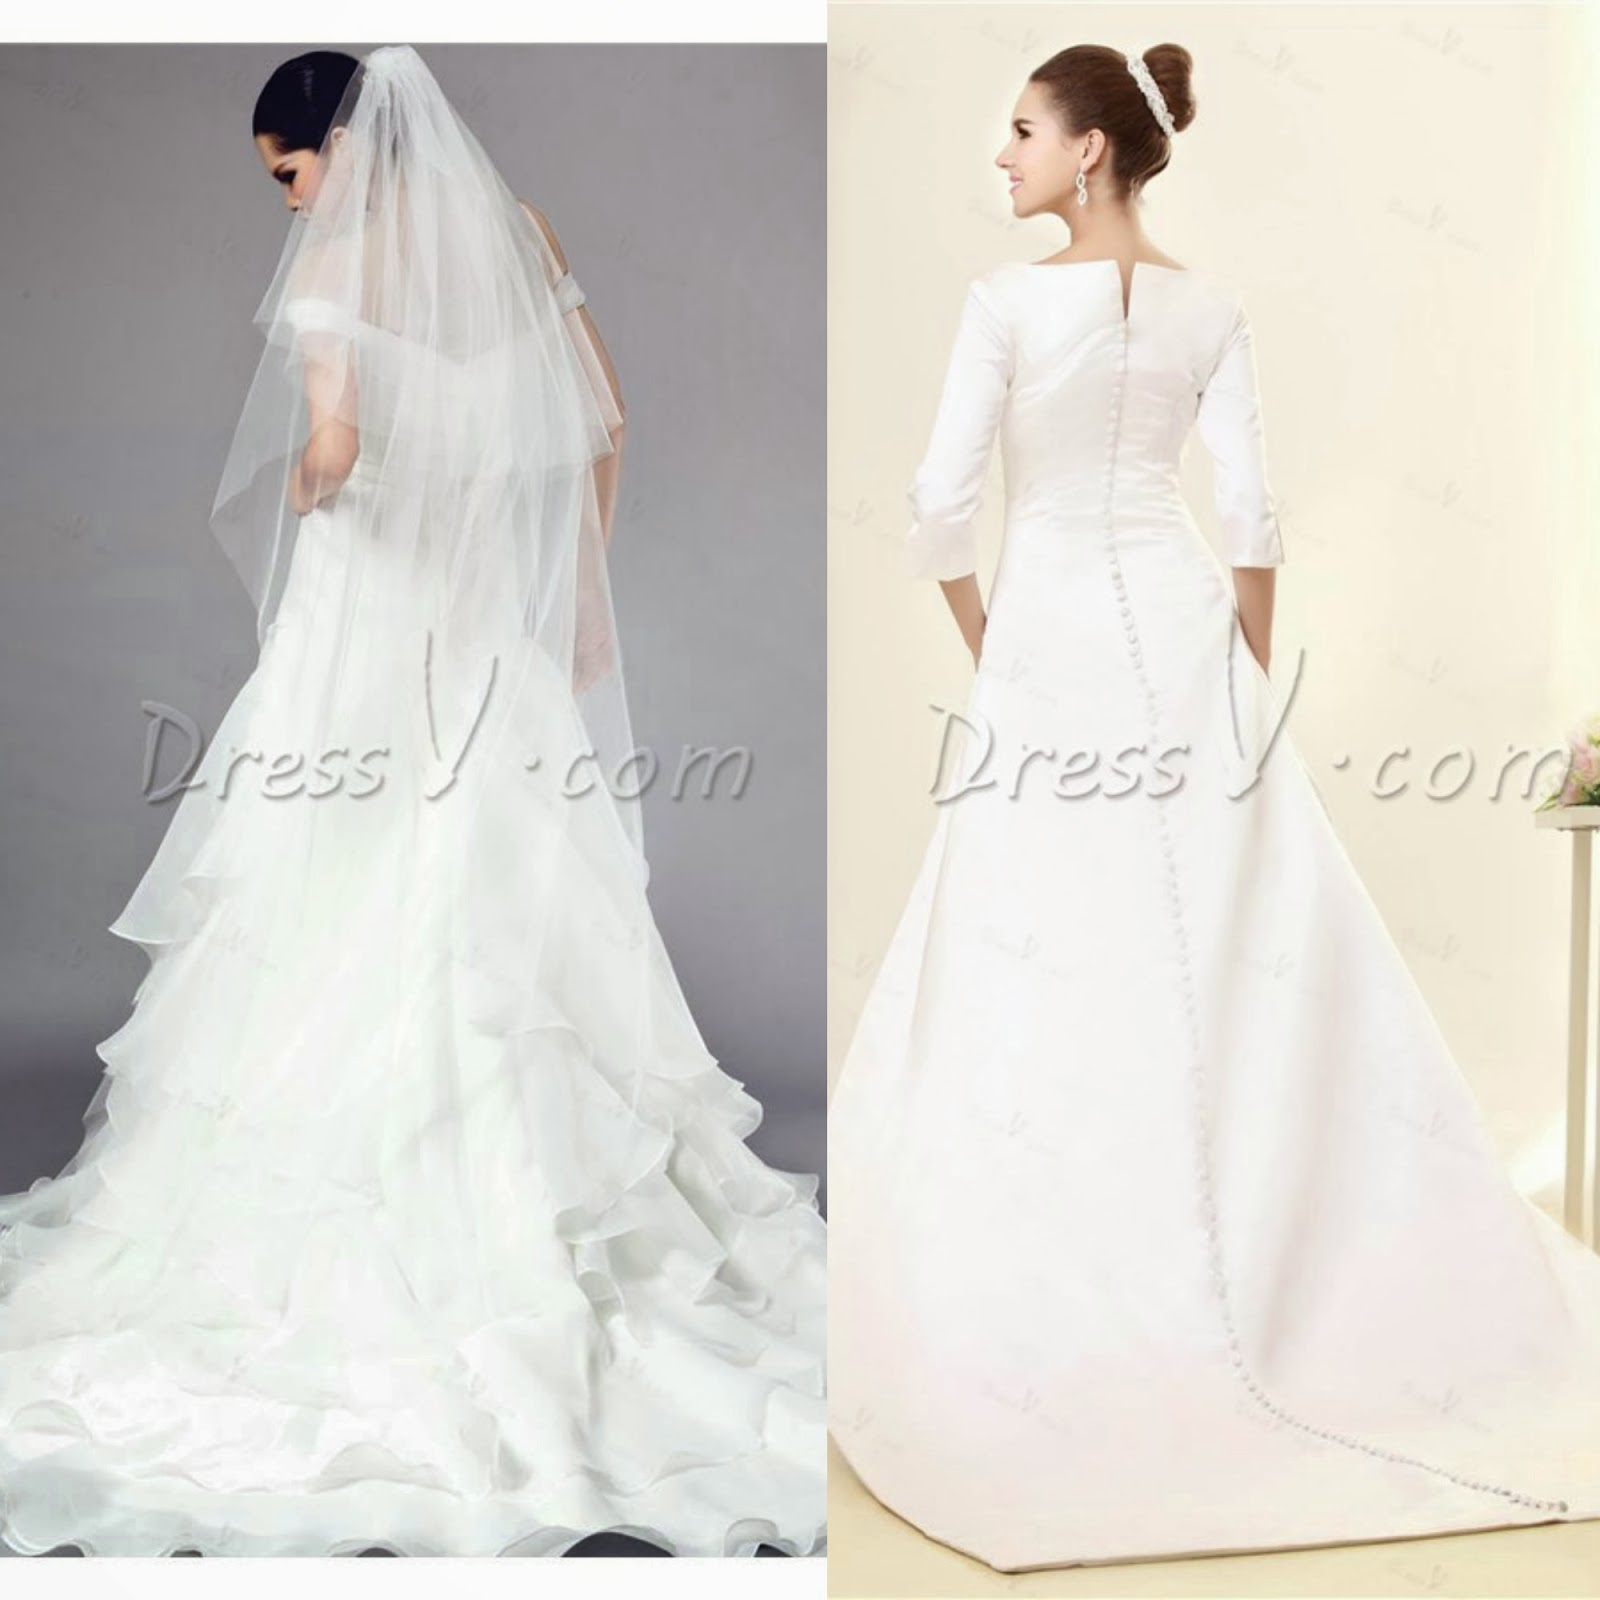 wedding dresses south jersey | Wedding